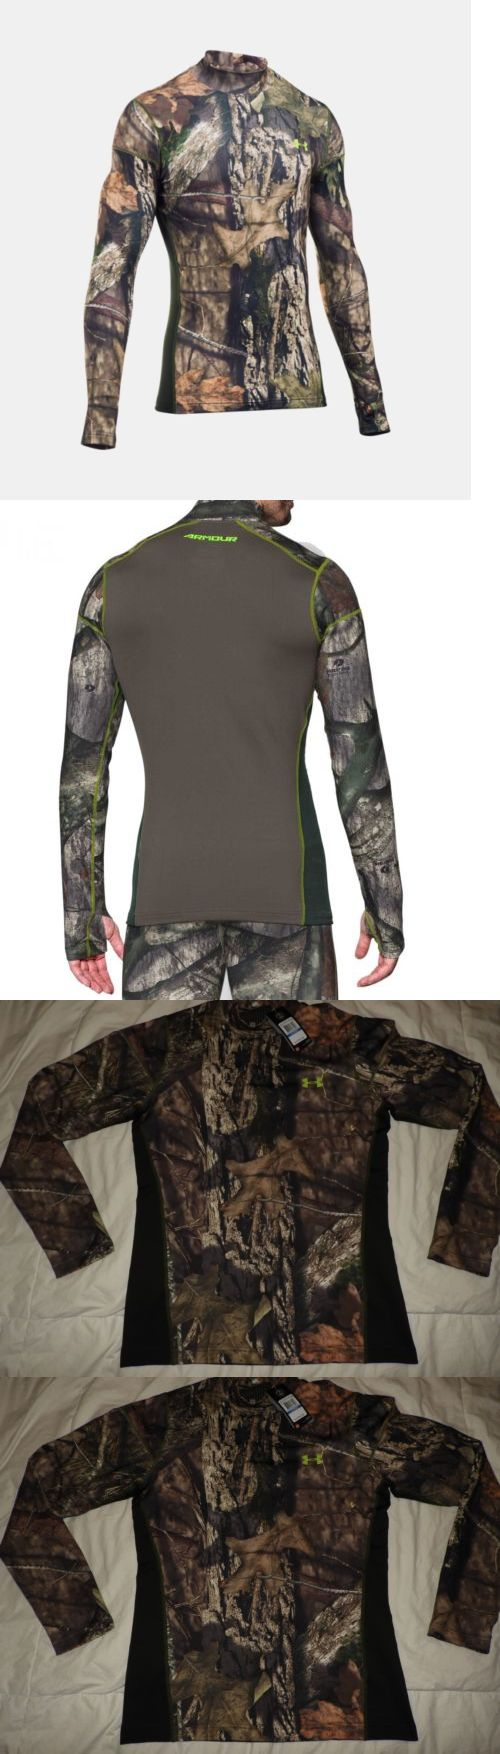 Base Layers 177867: Under Armour Scent Control Evo Mock Mossy Oak Camo Men 1259129 278 Xl Cold Gear -> BUY IT NOW ONLY: $49.99 on eBay!